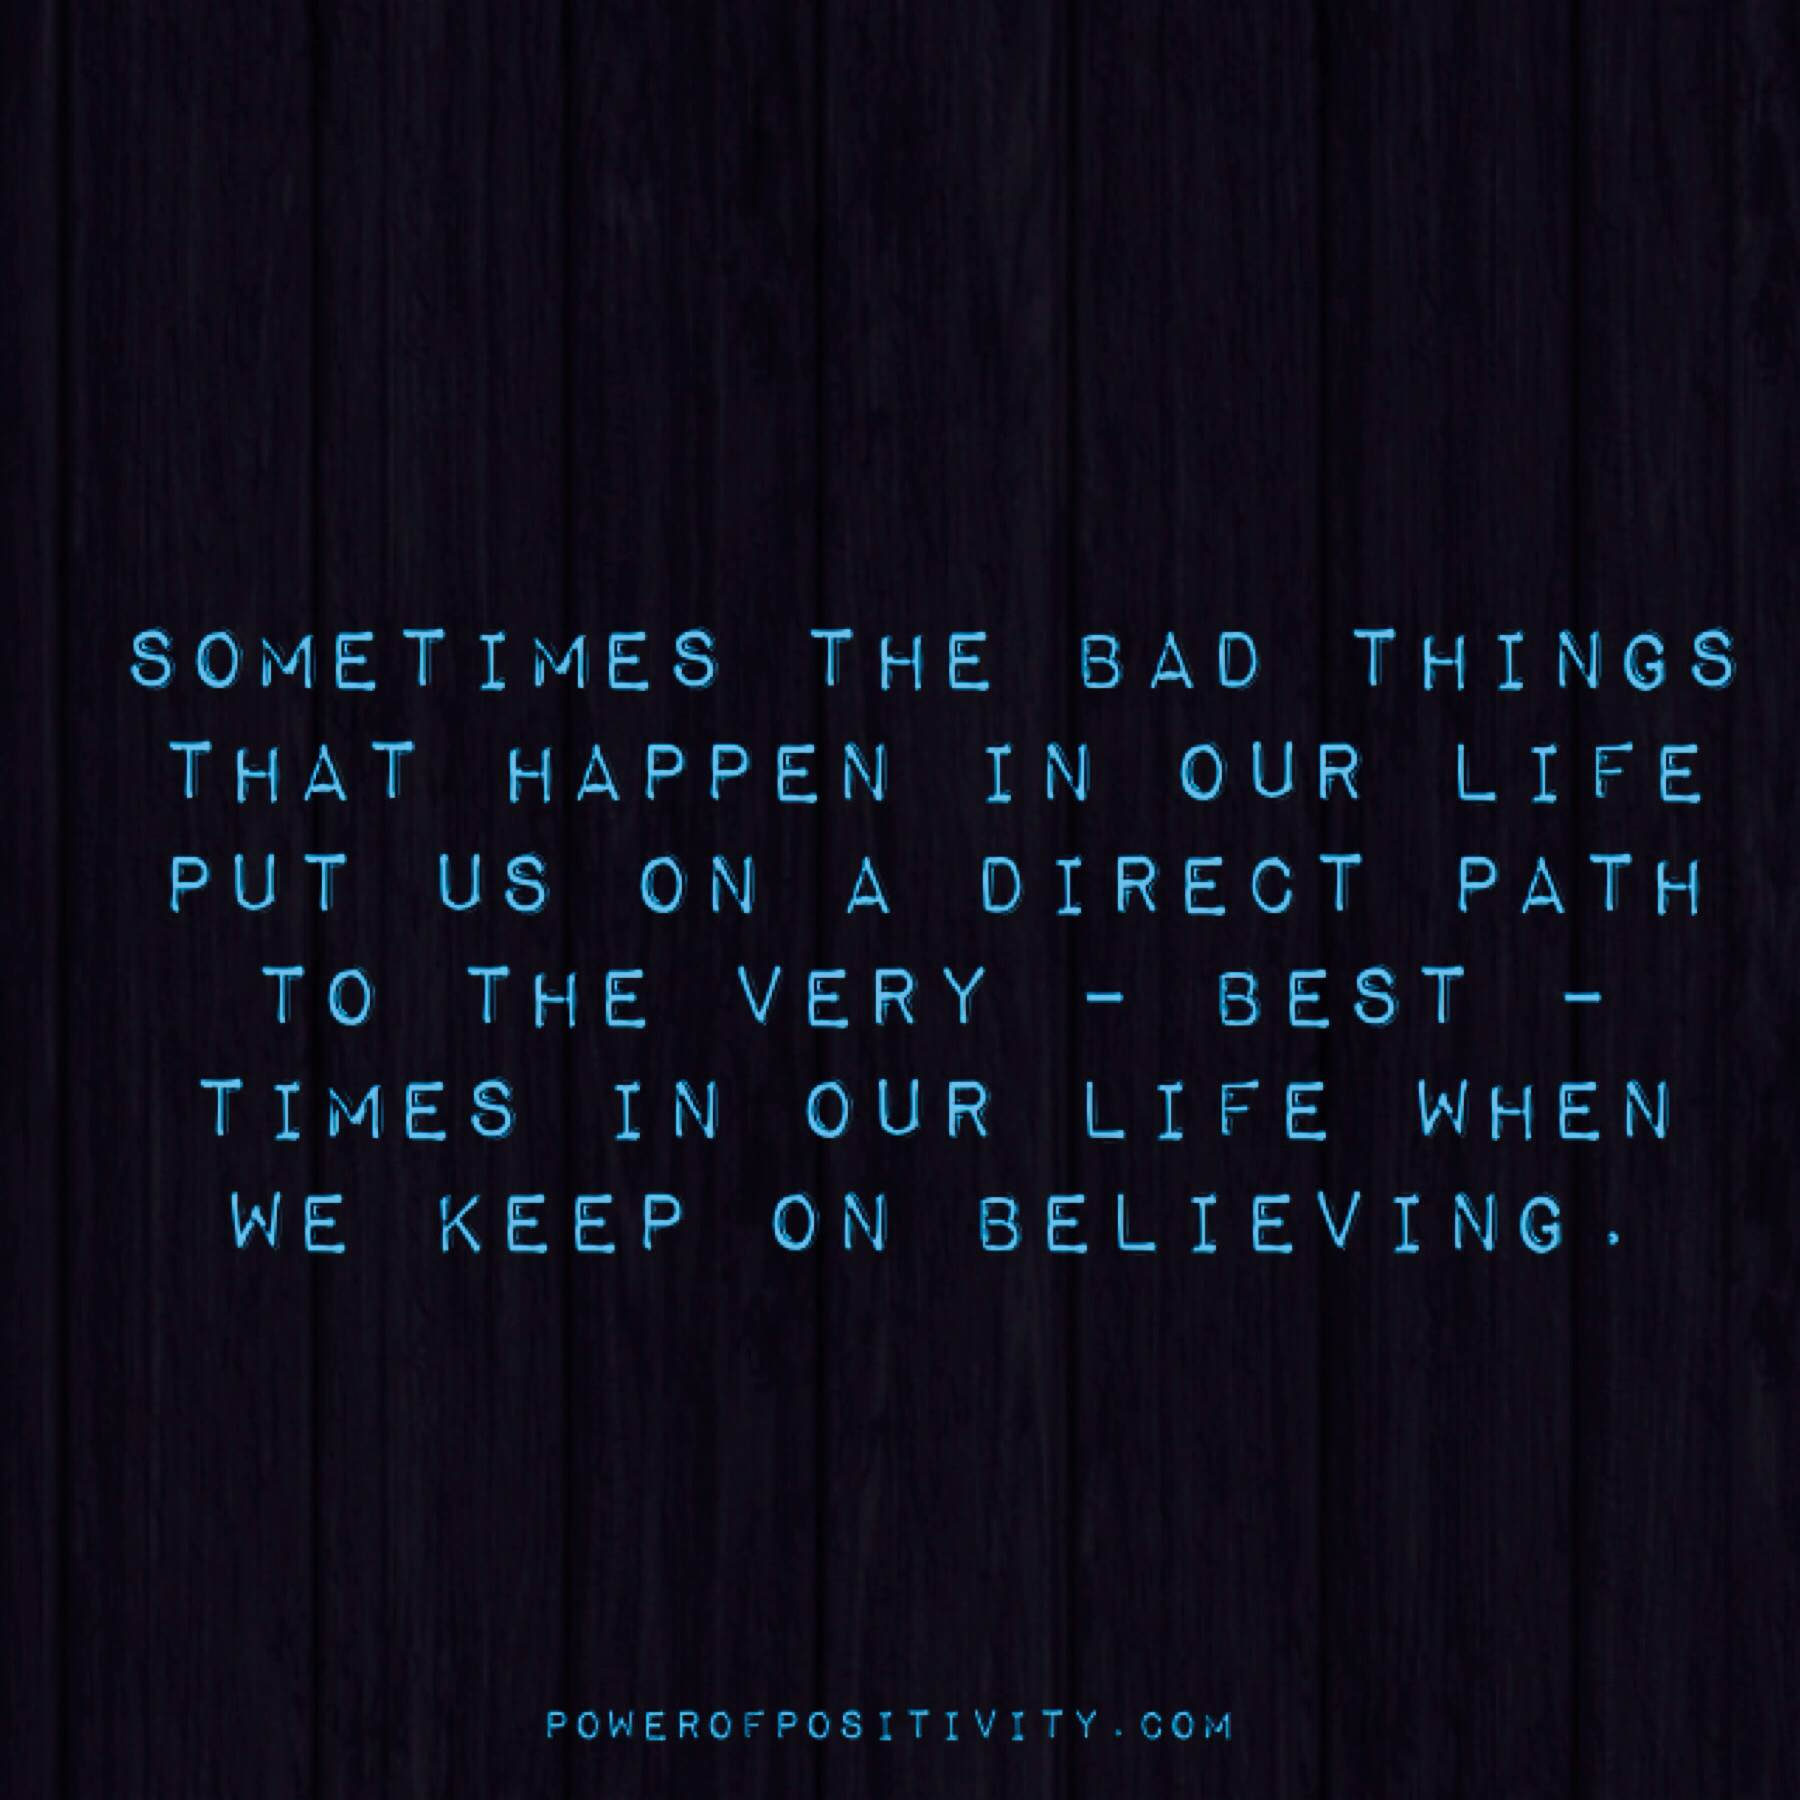 Bad Things Happen Quotes: Sometimes The Bad Things That Happen In Our Life